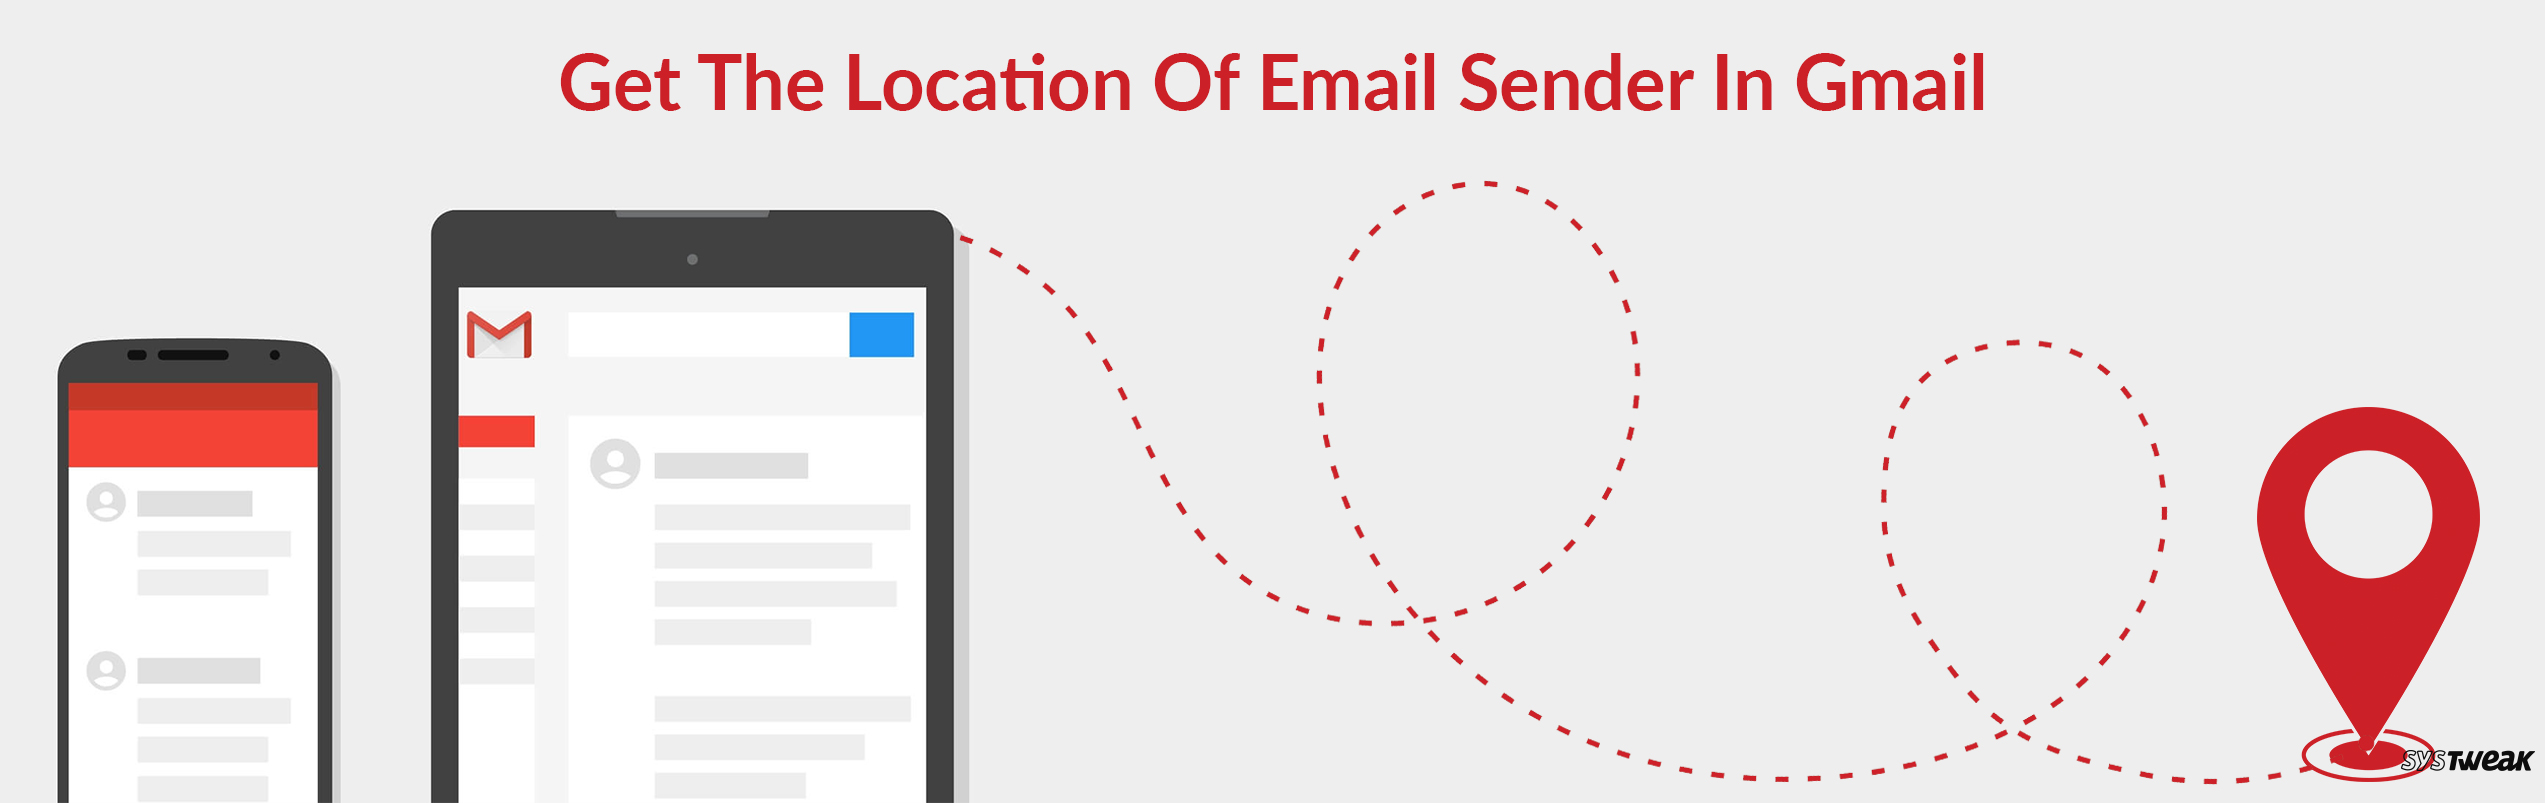 How to Easily Find the Location of Sender in Gmail